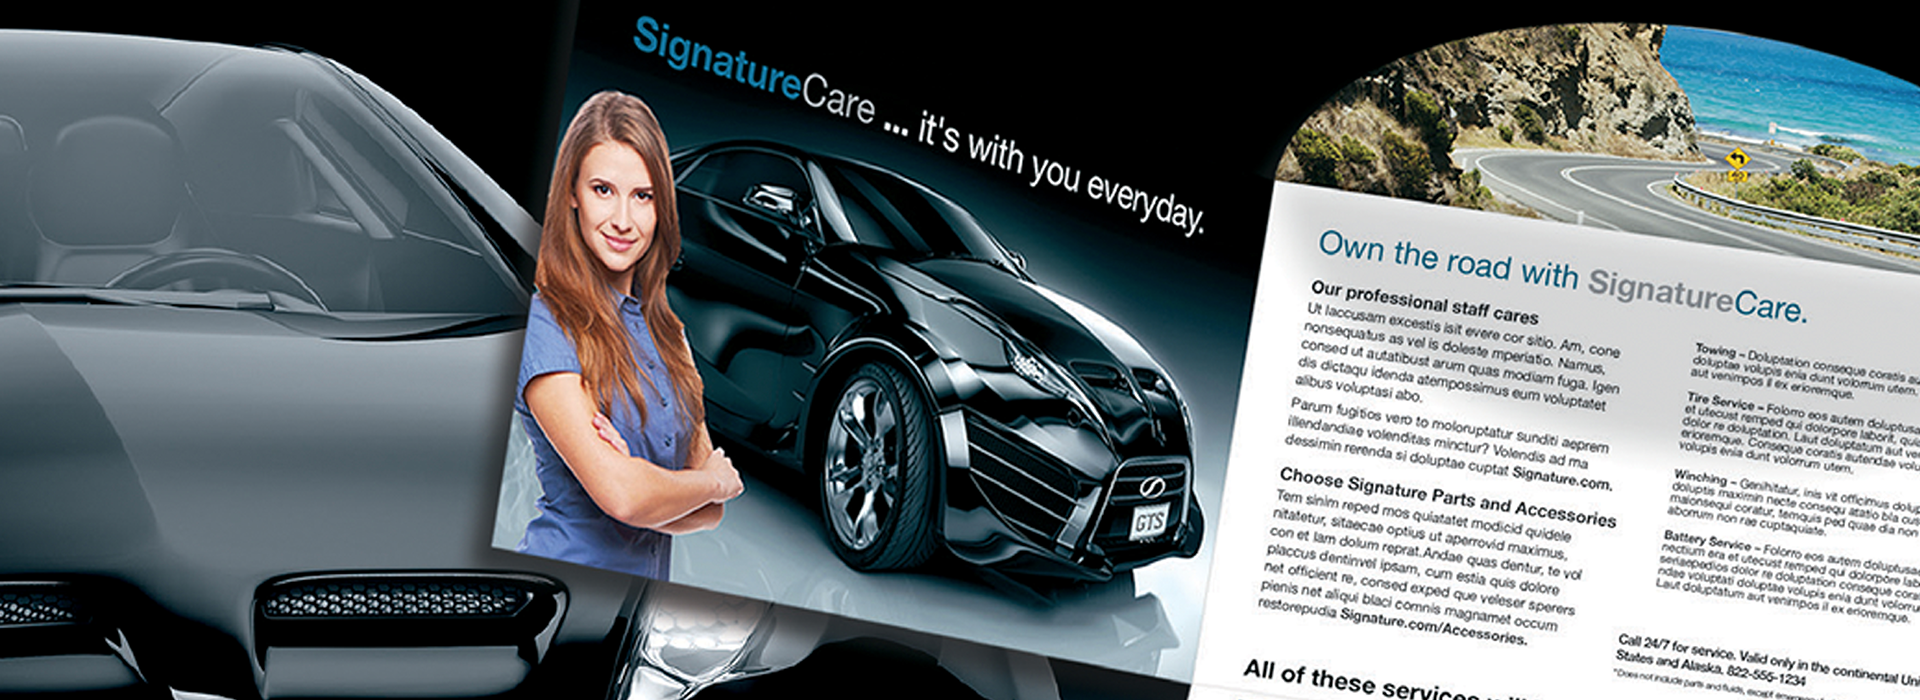 A hyper personalized direct mail piece for the auto industry